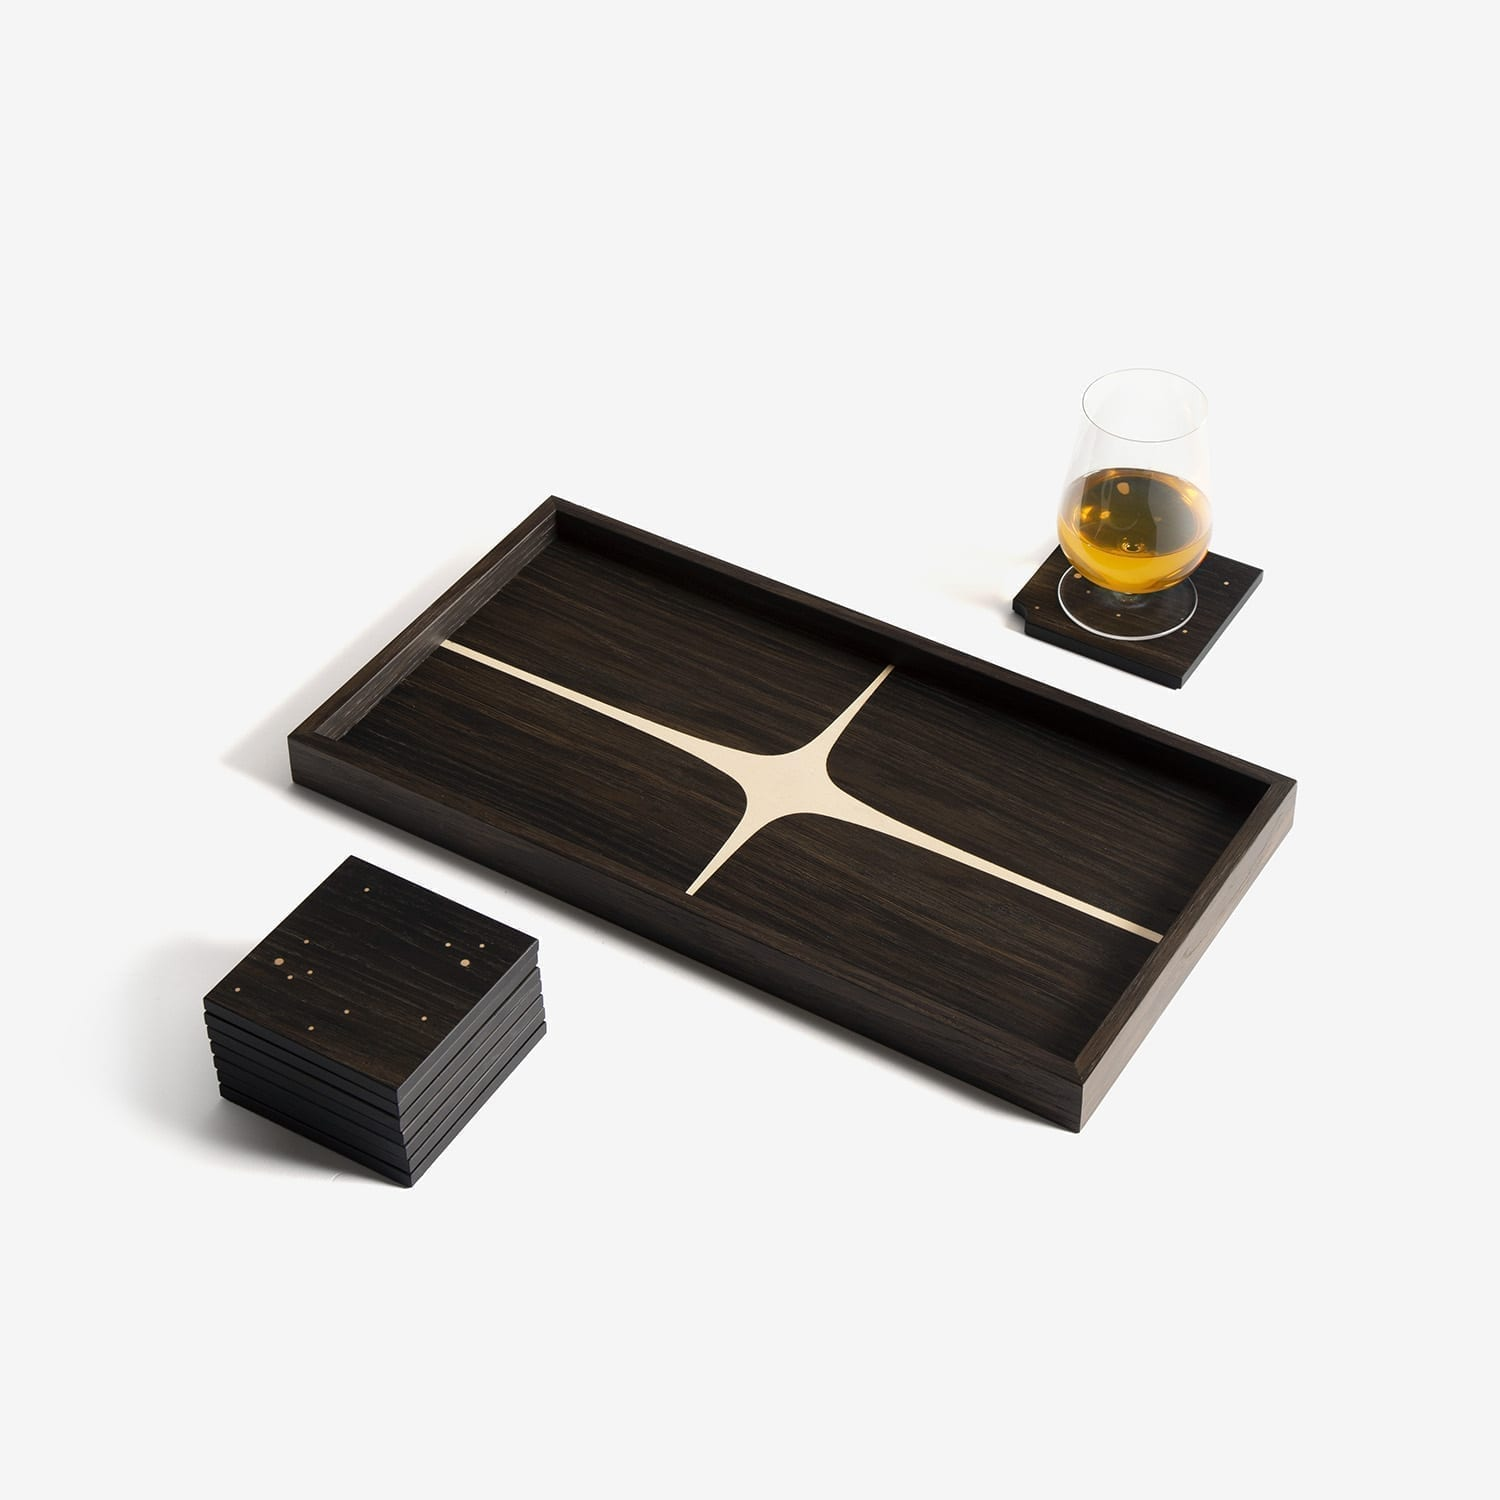 The Invisible Collection Creations Dragonfly Nova Tray